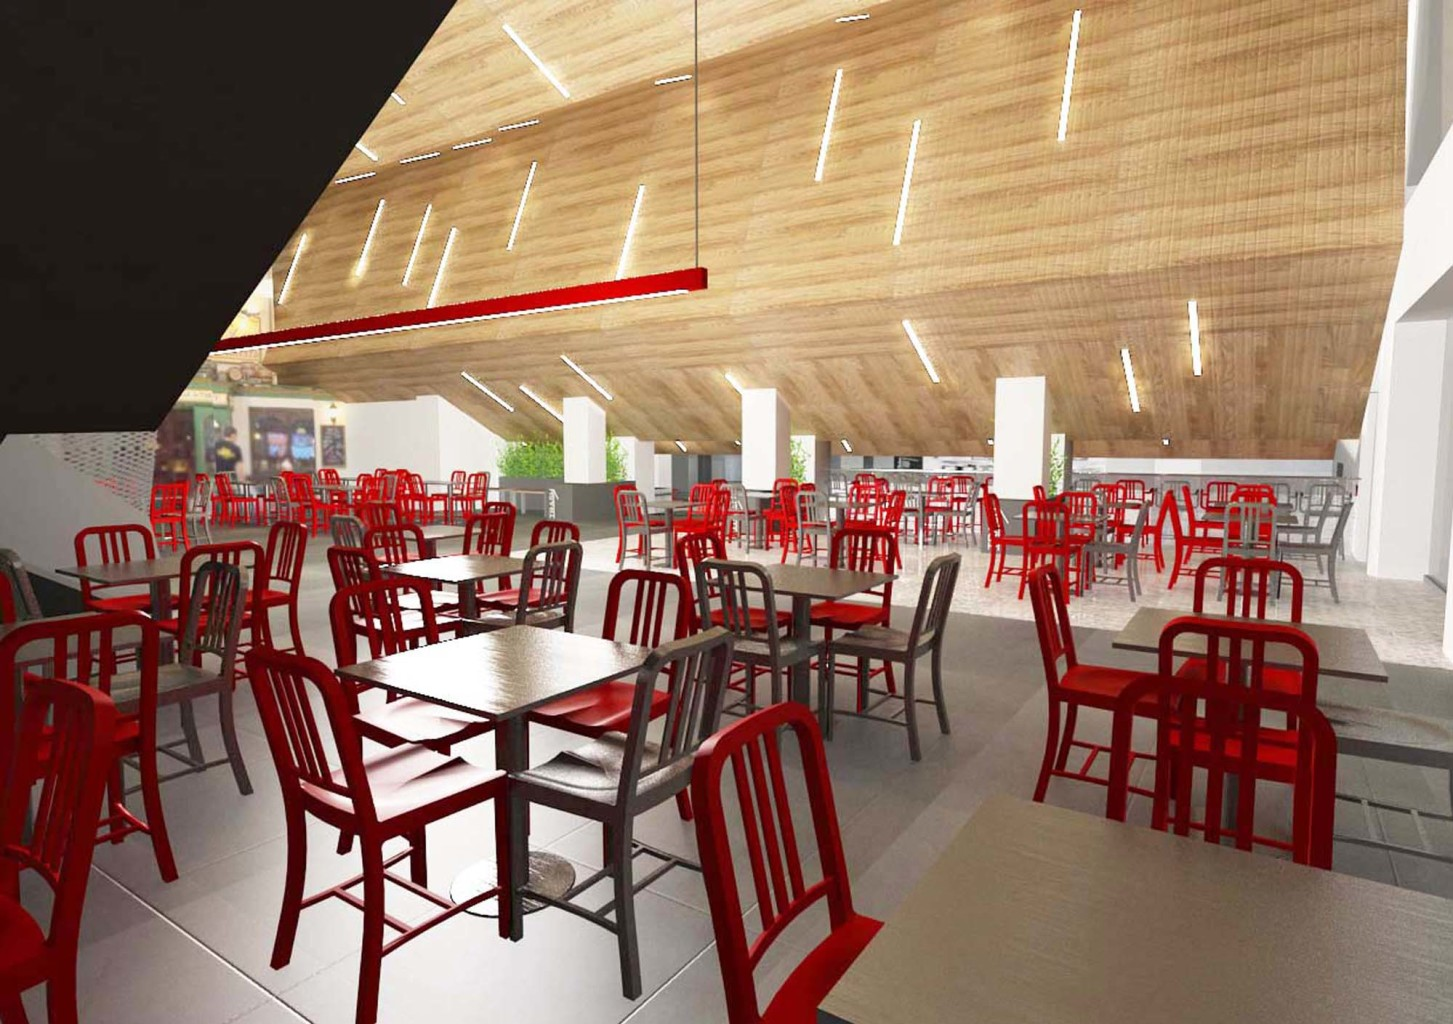 mia food court malta render 5